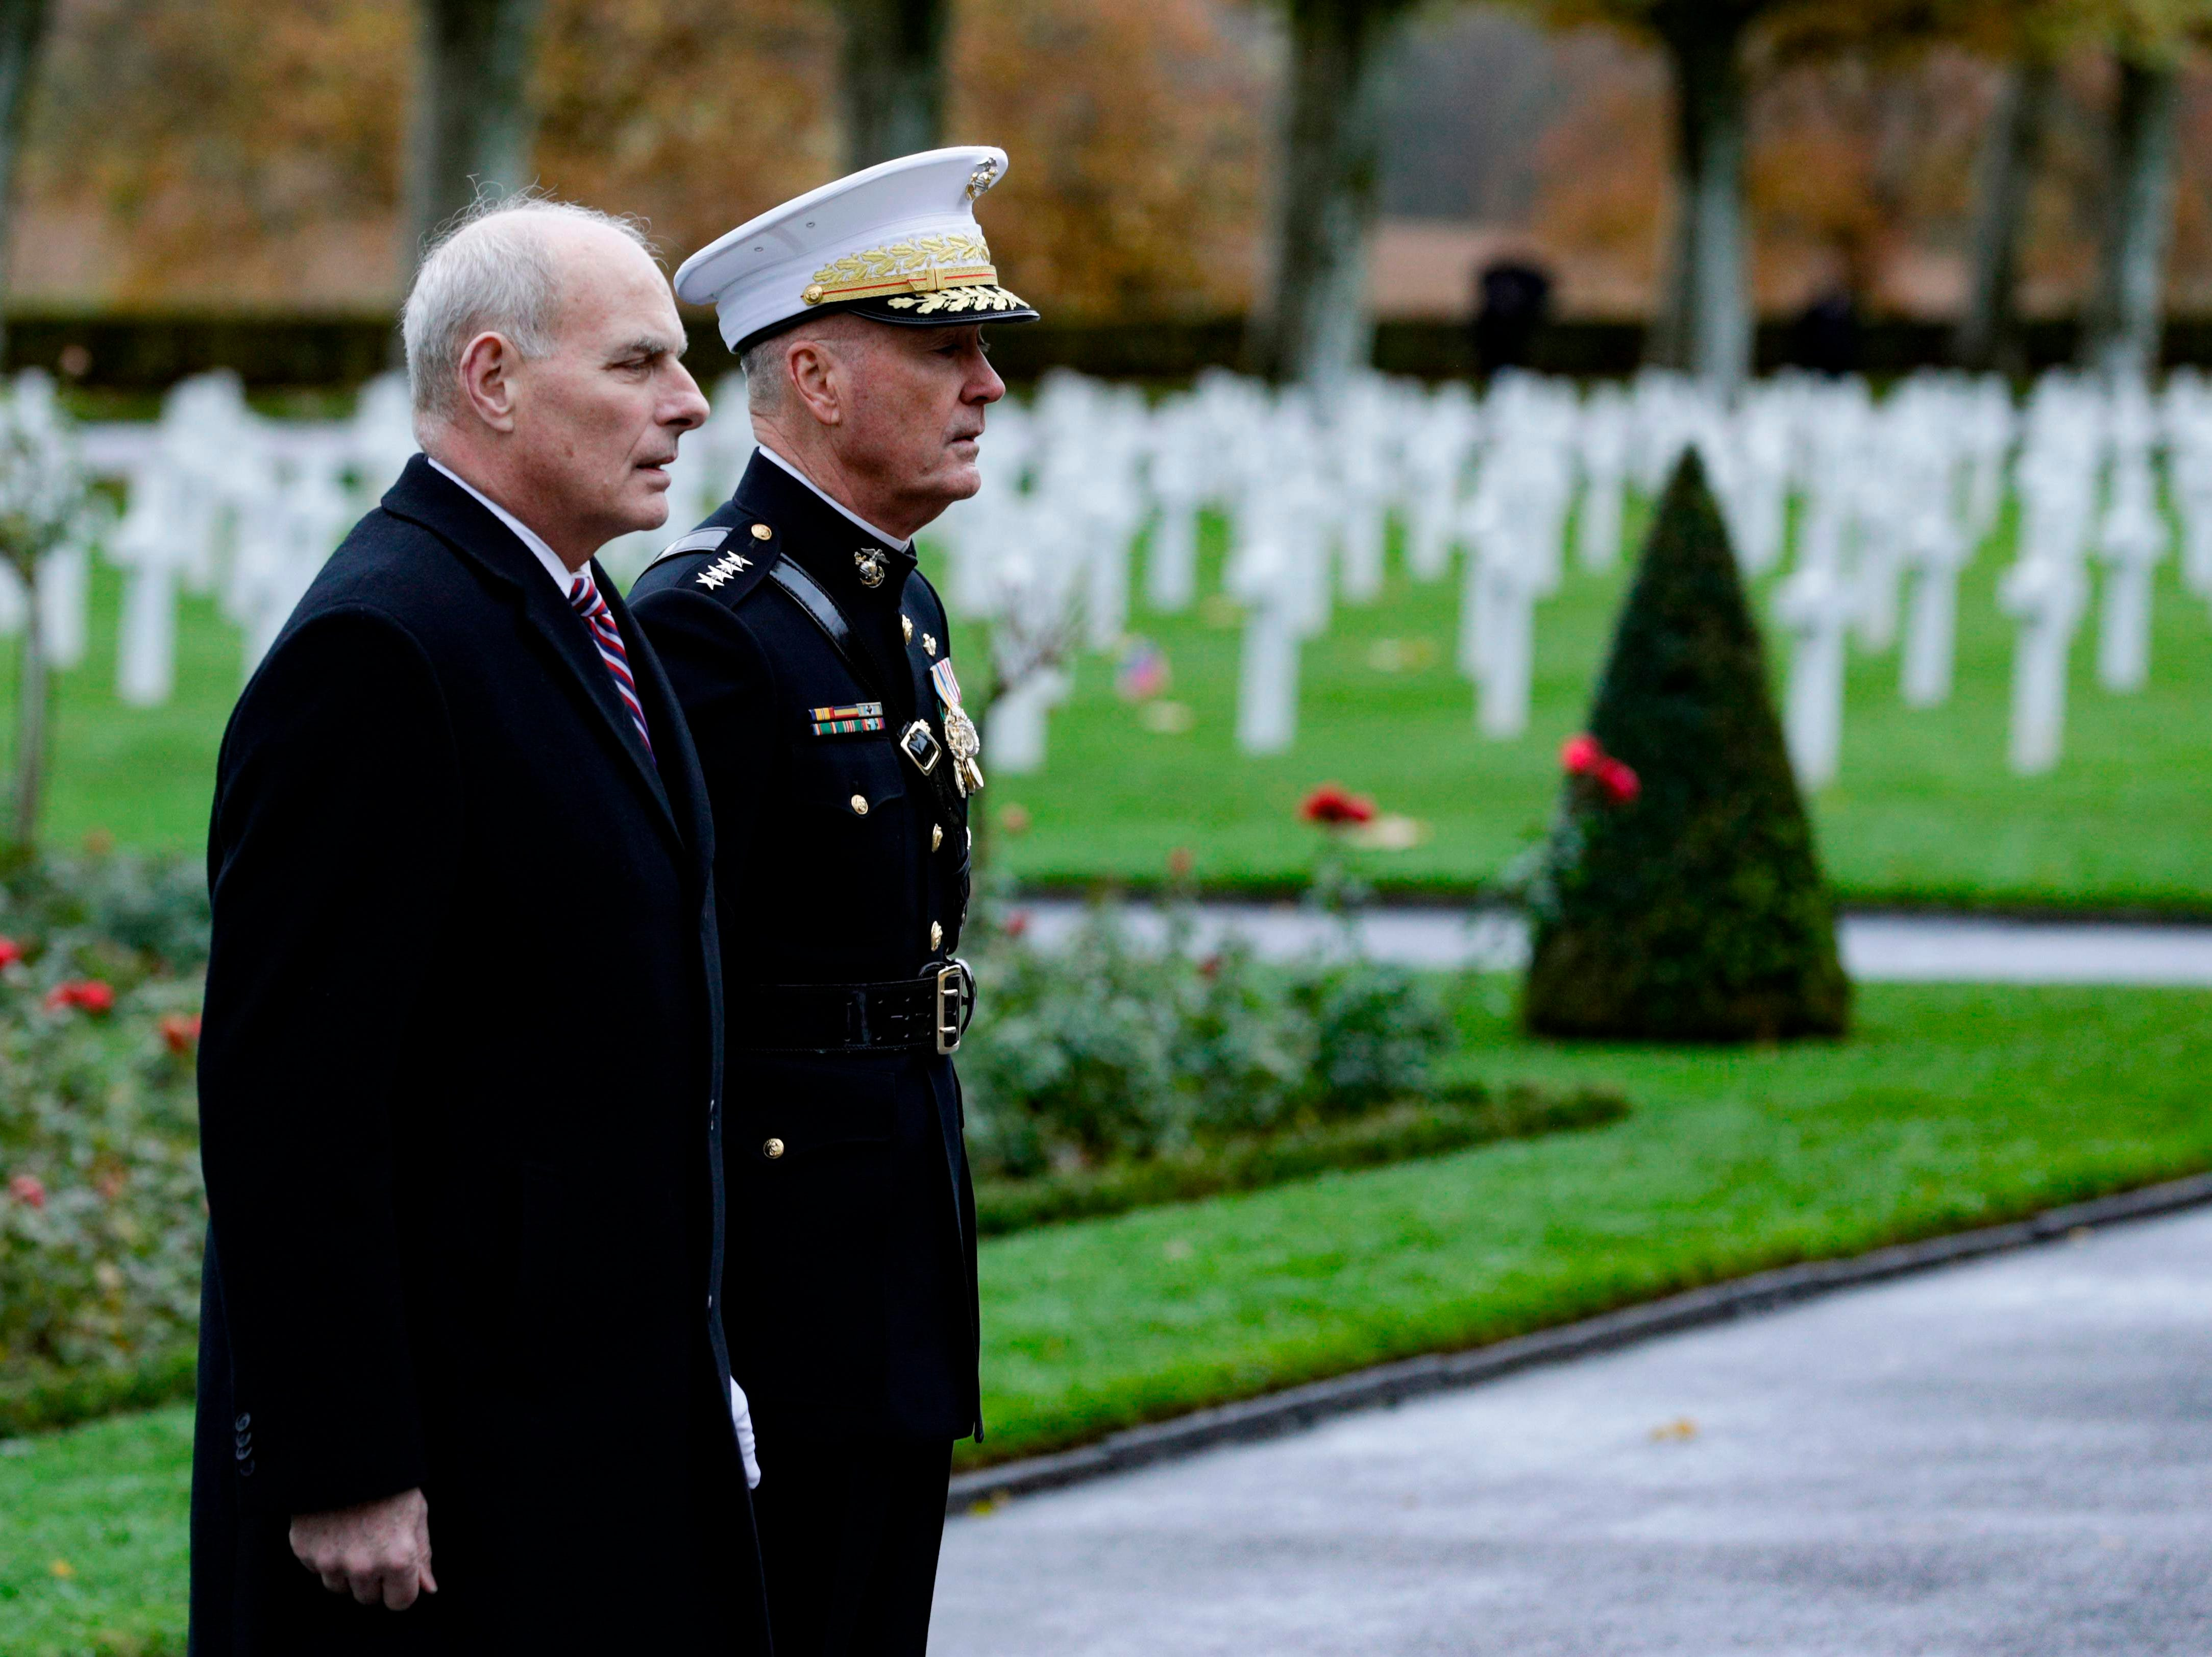 US General Joseph Dunford, right, and retired United States Marine Corps general John F Kelly White House Chief of Staff visit the Aisne-Marne American Cemetery and Memorial in Belleau, on Nov. 10, 2018 as part of commemorations marking the 100th anniversary of the 11 November 1918 armistice, ending World War I.